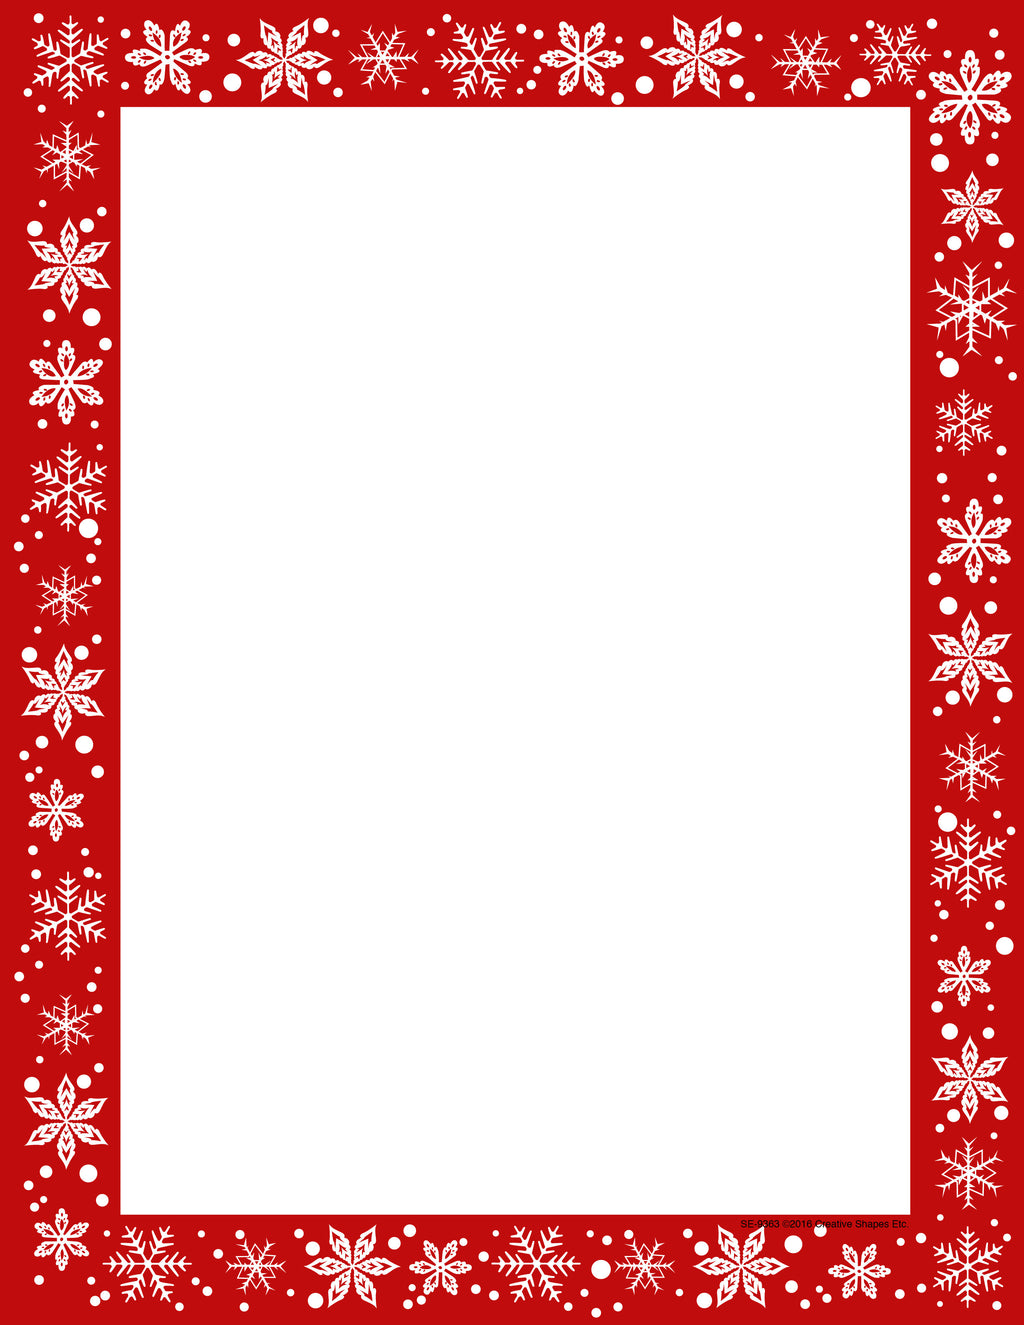 Designer Paper - Christmas Snow (50 Sheet Package) - Creative Shapes Etc.